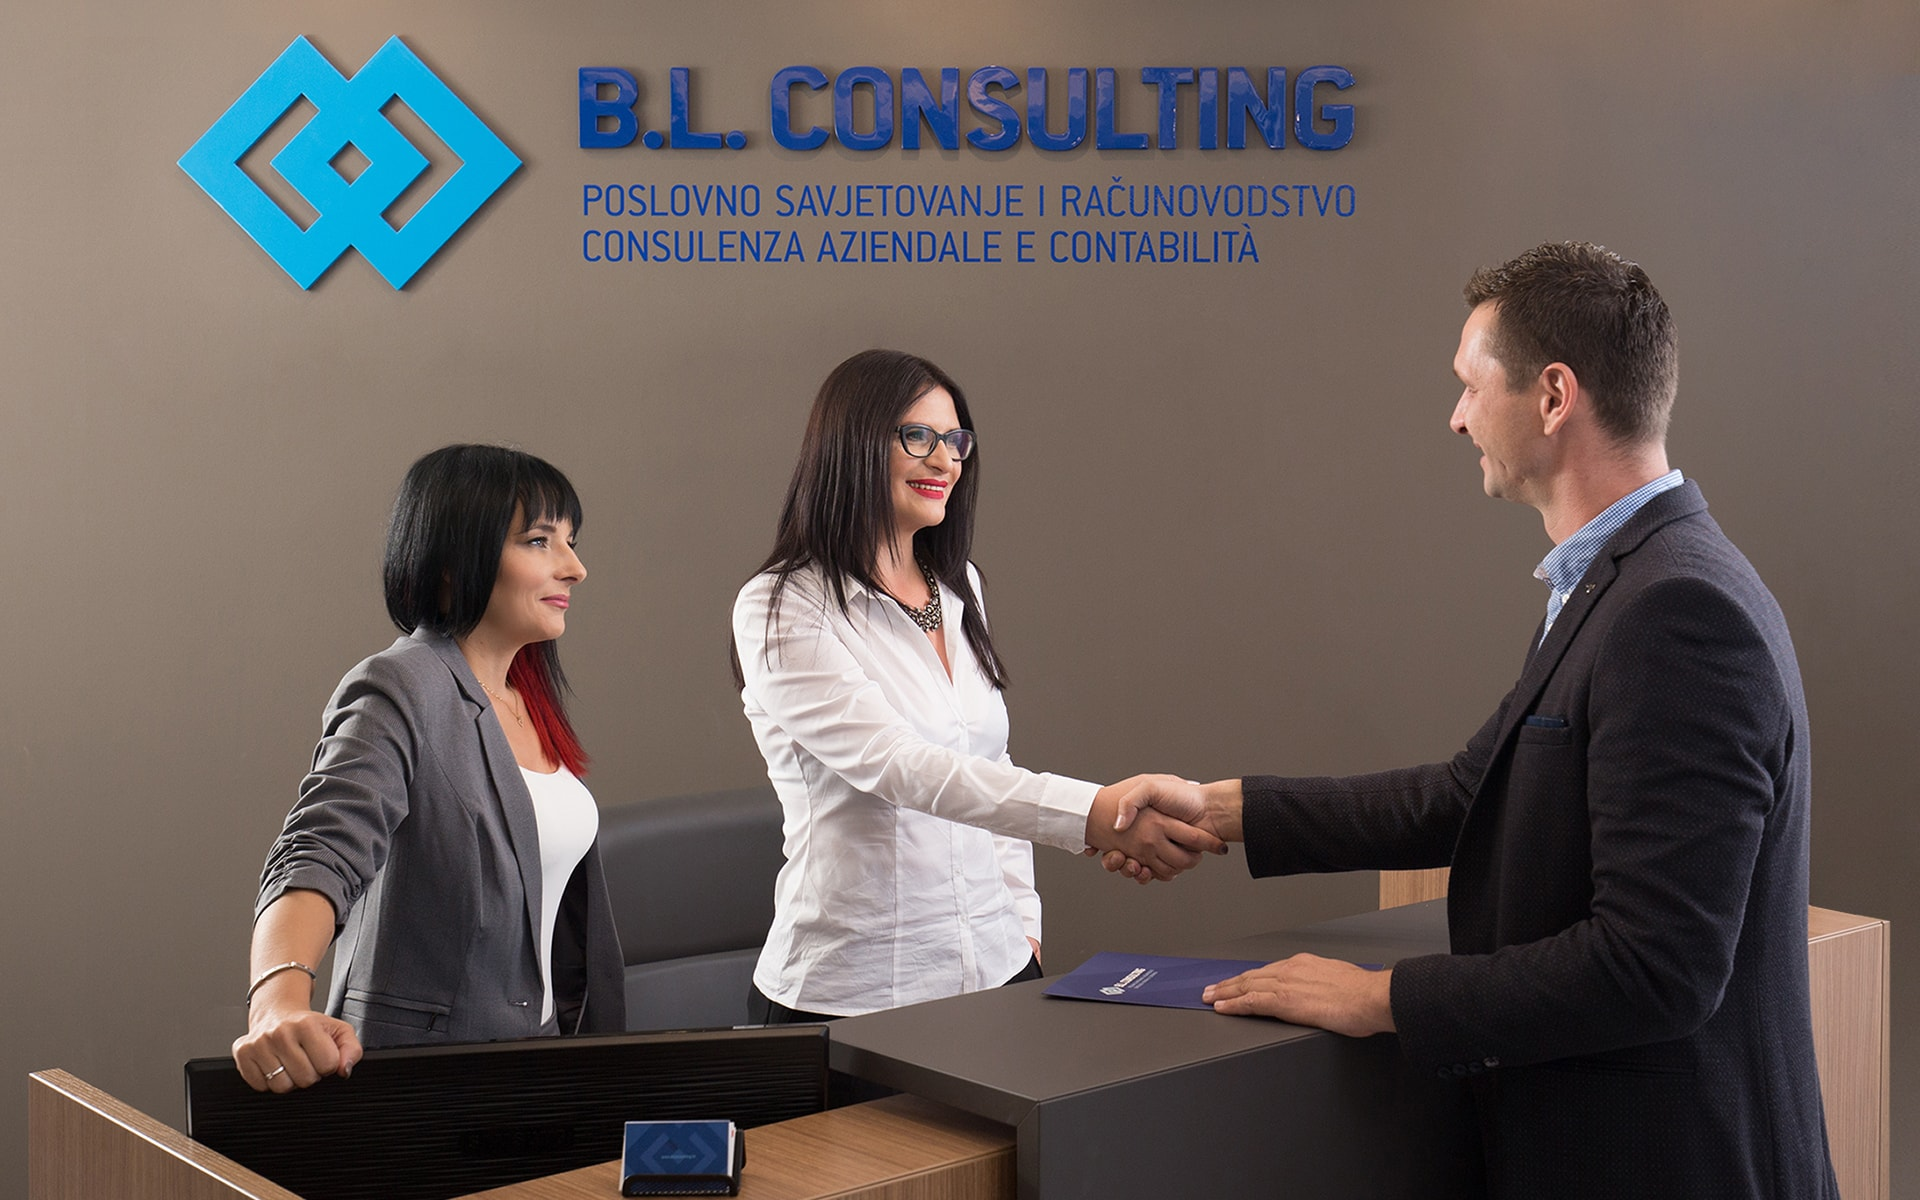 bl-consulting-welcome_4c_min